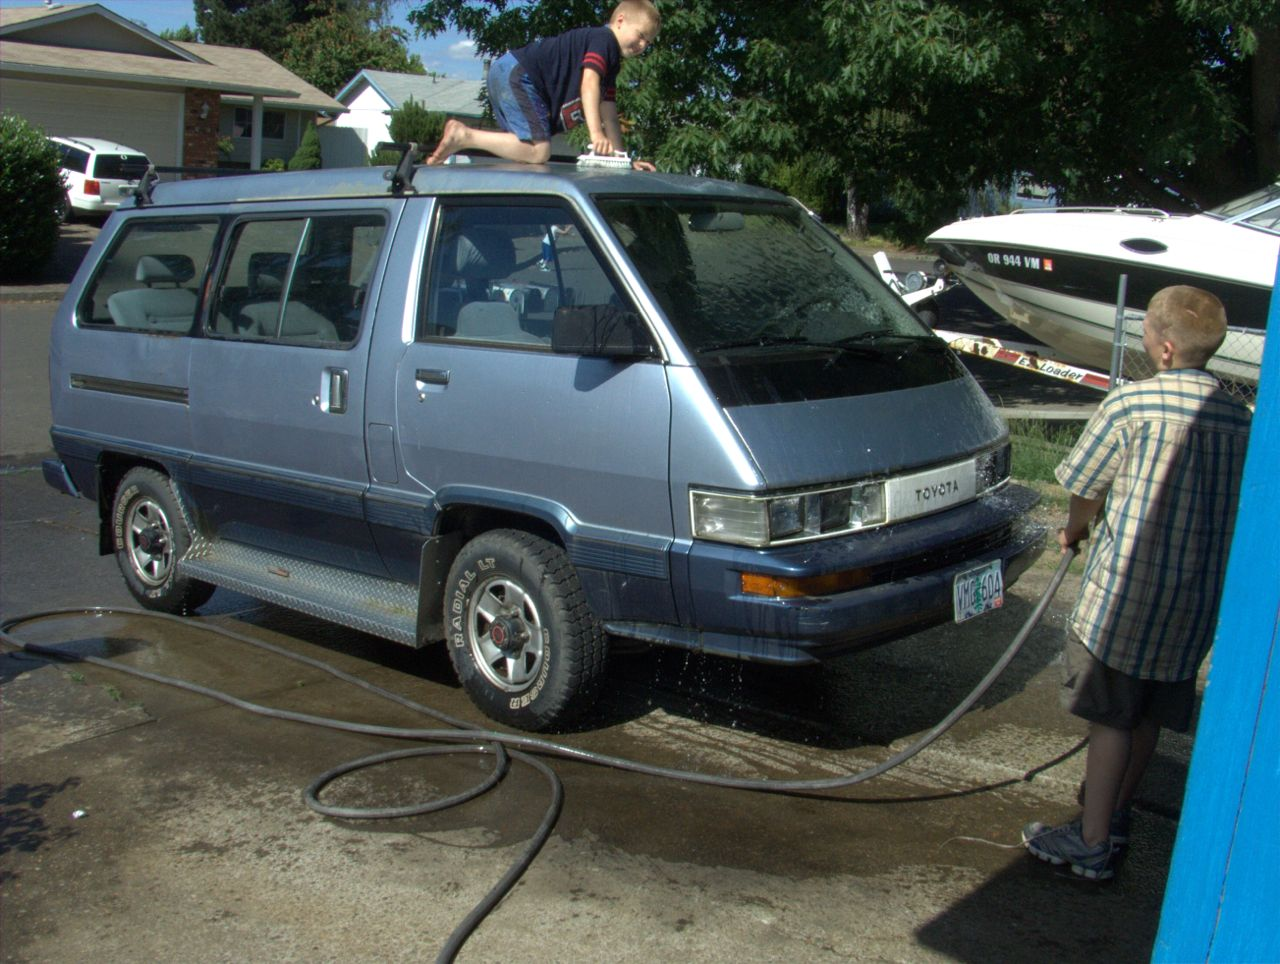 Cars of a Lifetime: 1989 Toyota 4×4 Van- The Second Death or History